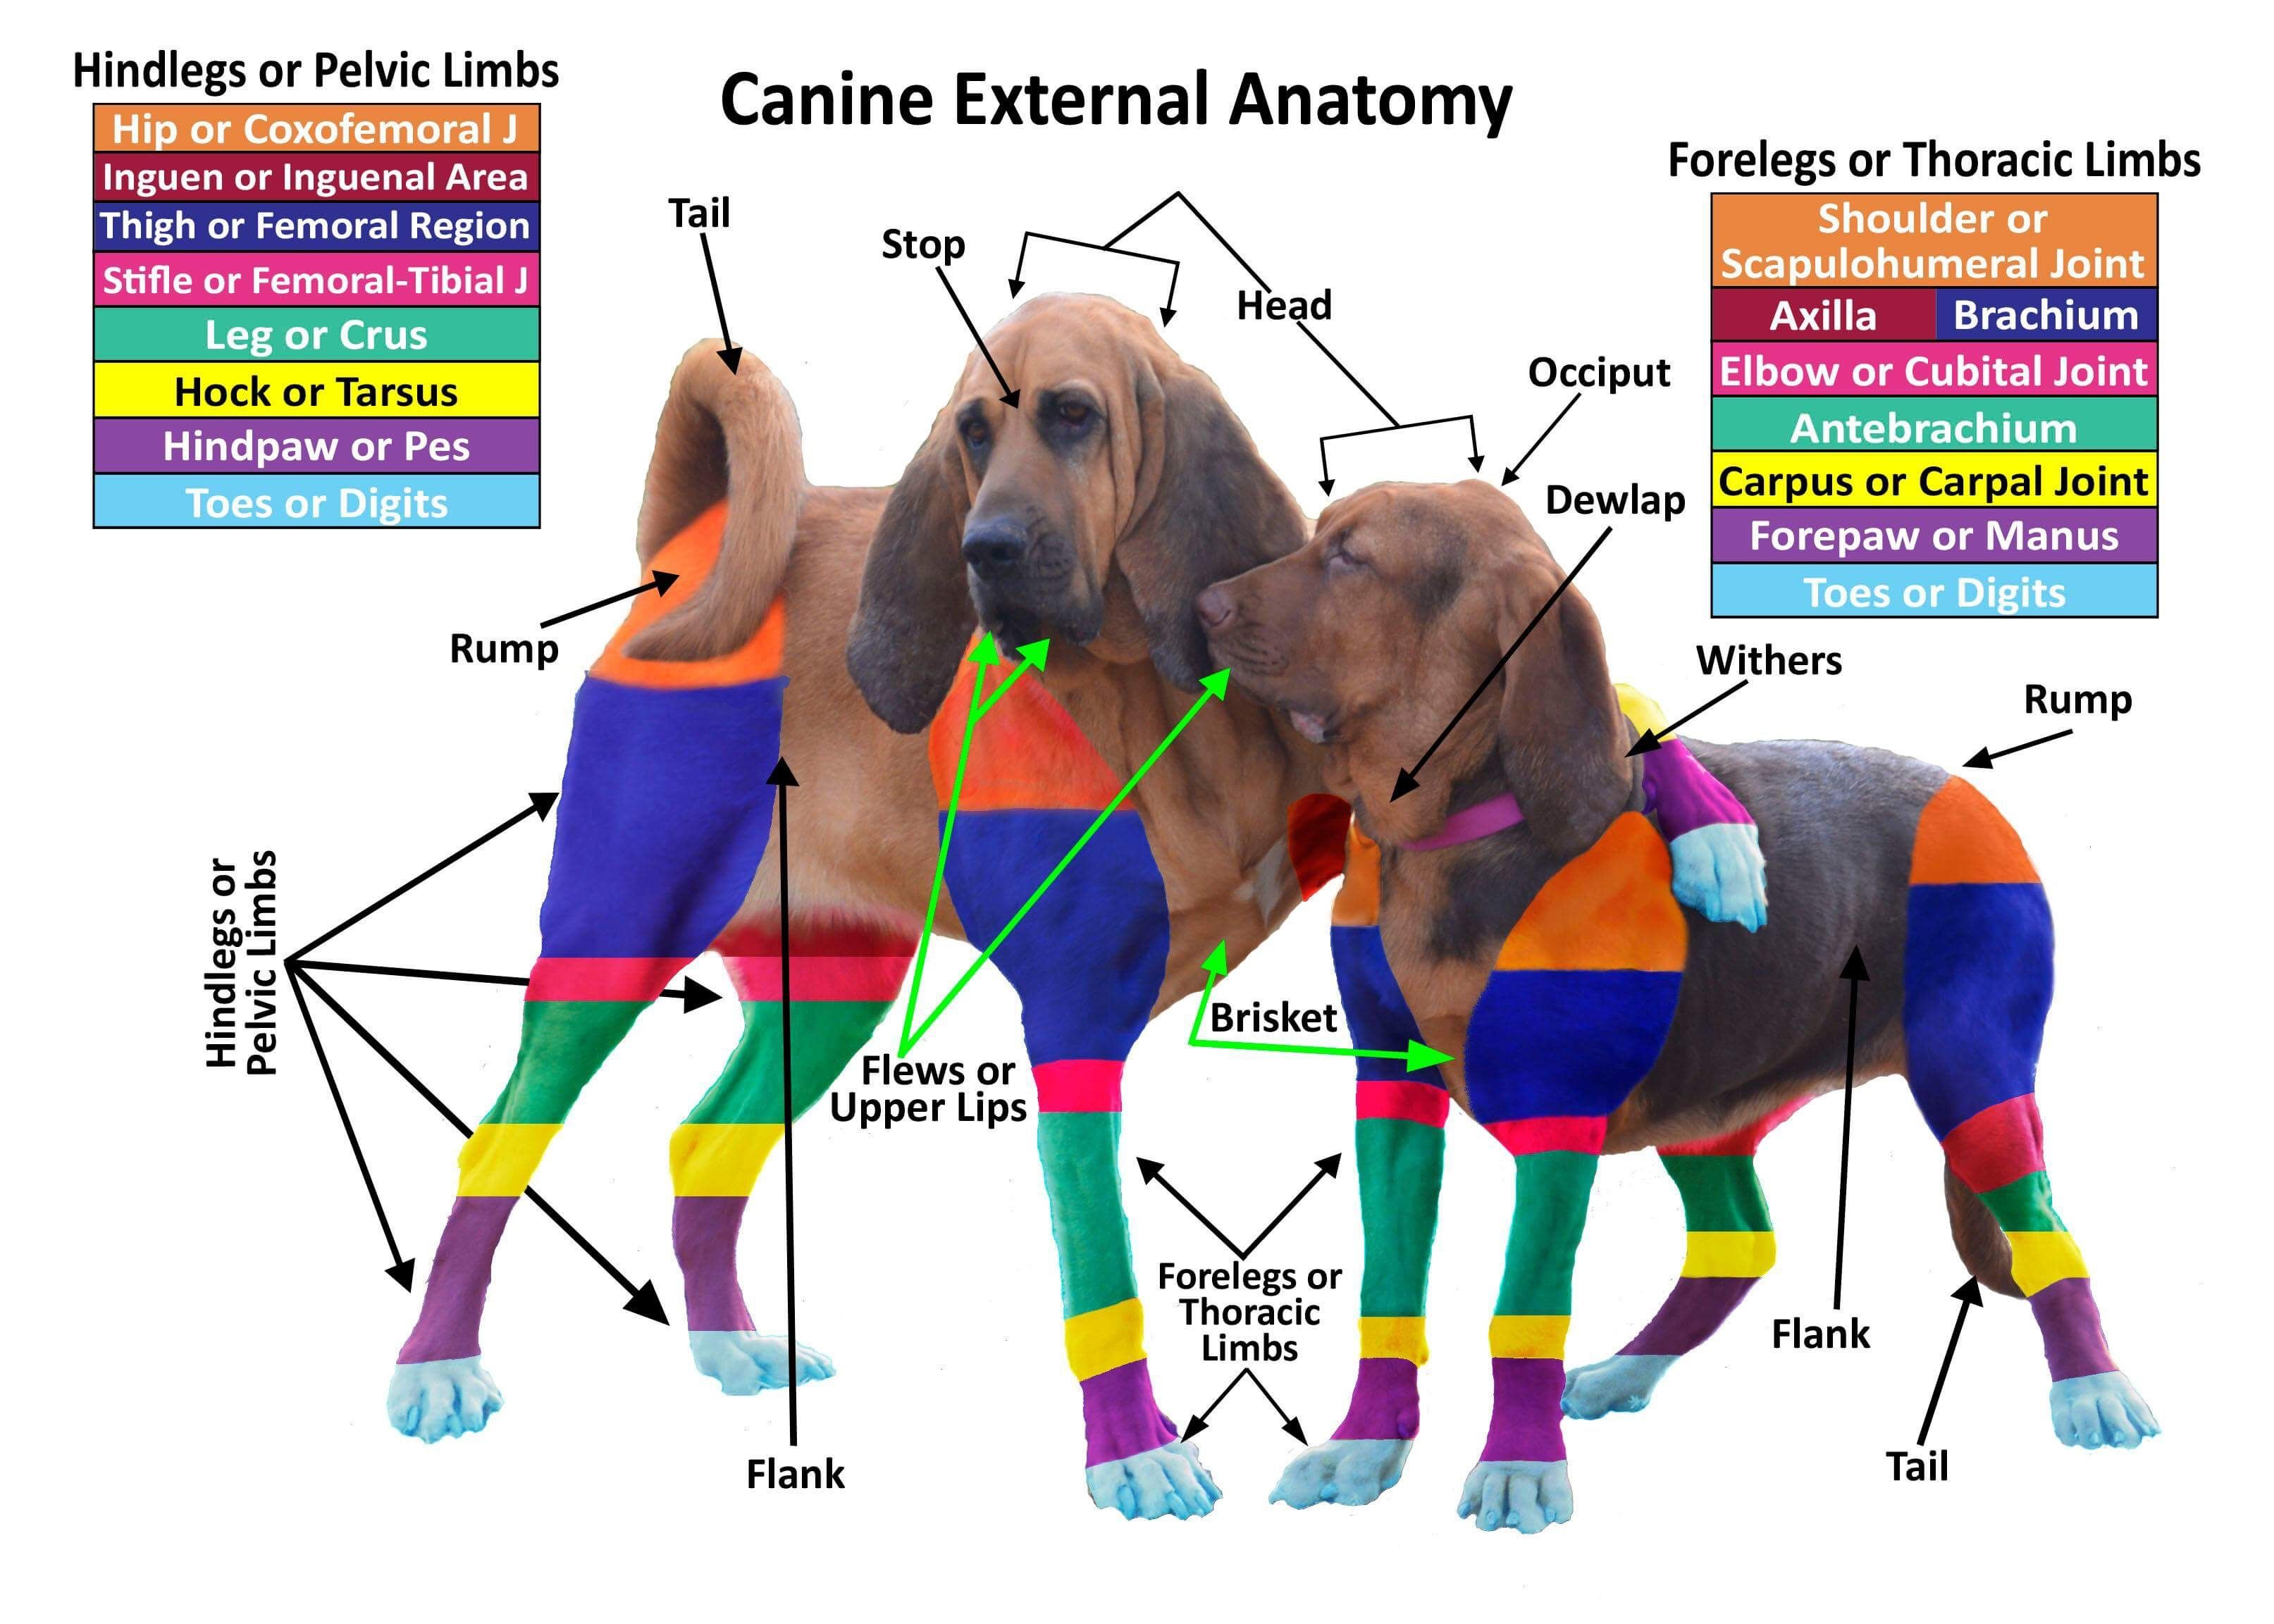 Canine External Anatomy Anatomy and Physiology Veterinary Medical ...